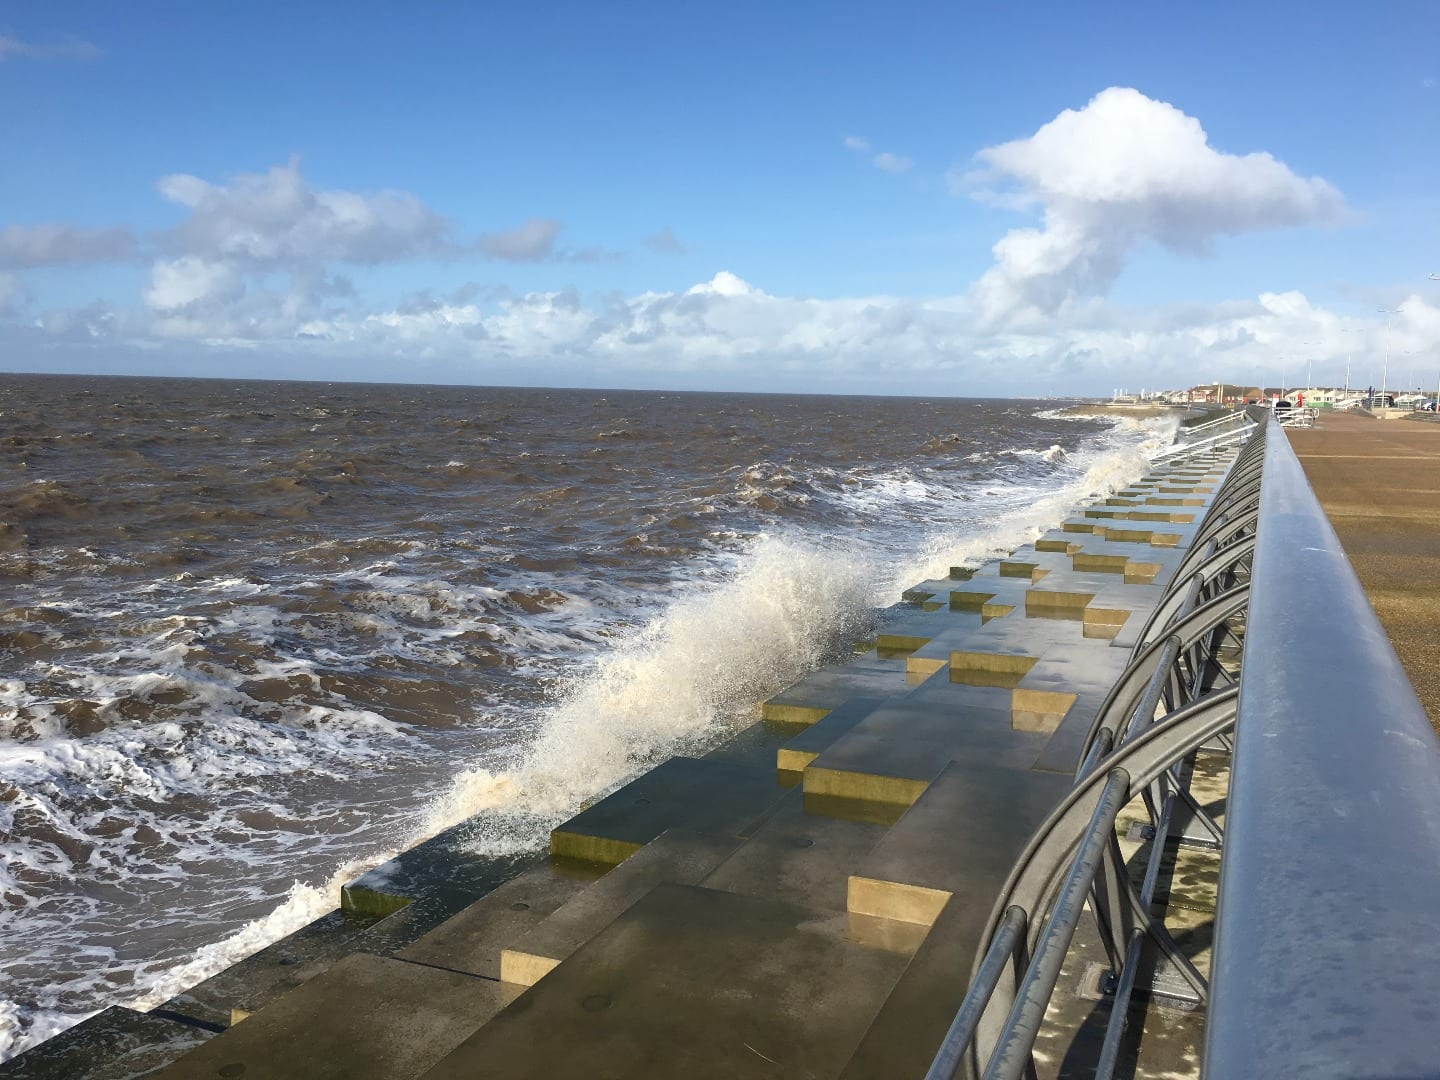 New Blackpool sea defences at Anchorsholme, Fylde Coast seafront